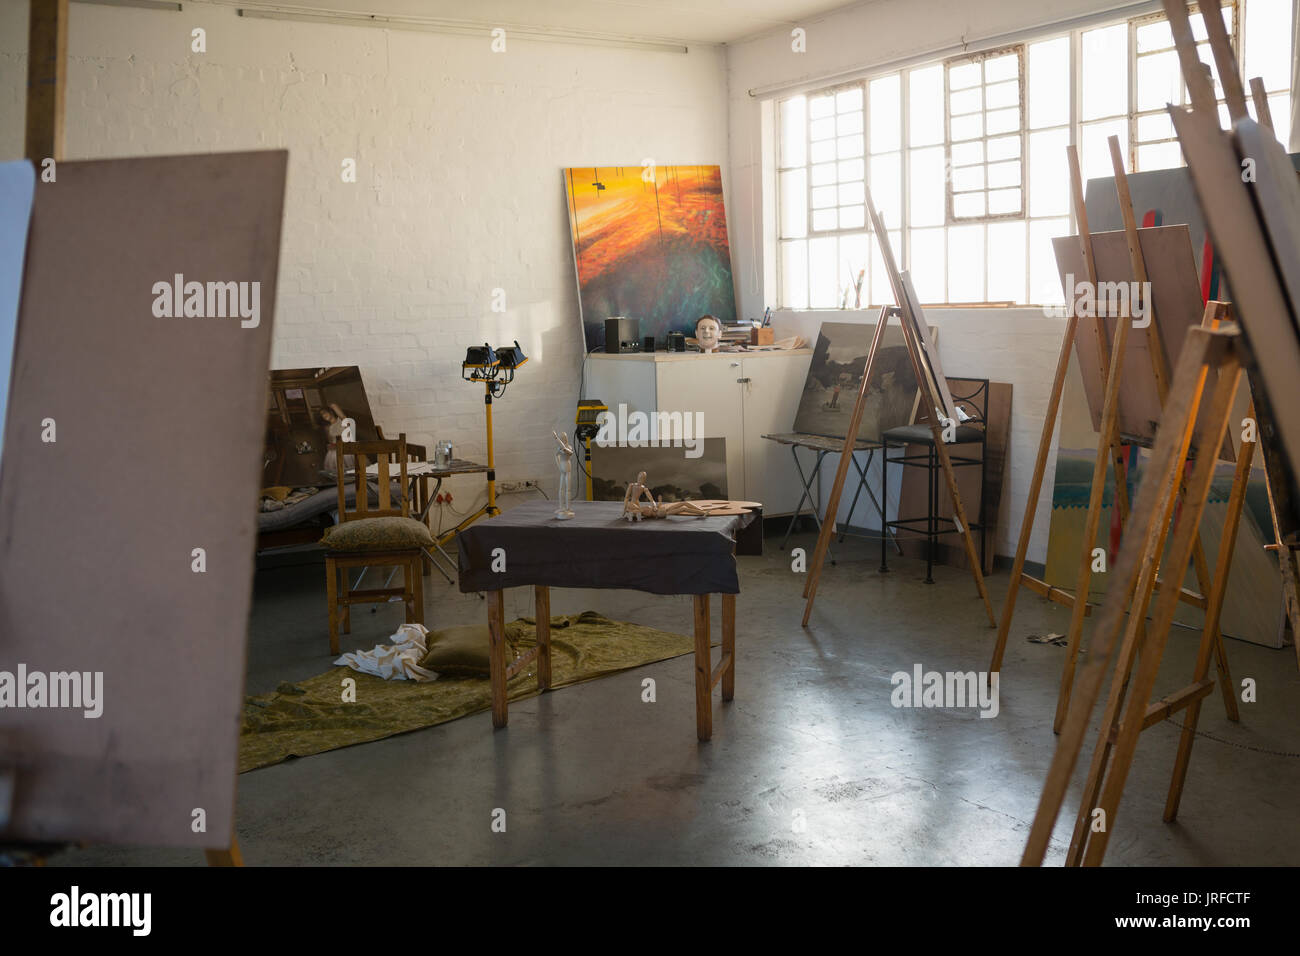 Easels with artists canvas in art class - Stock Image